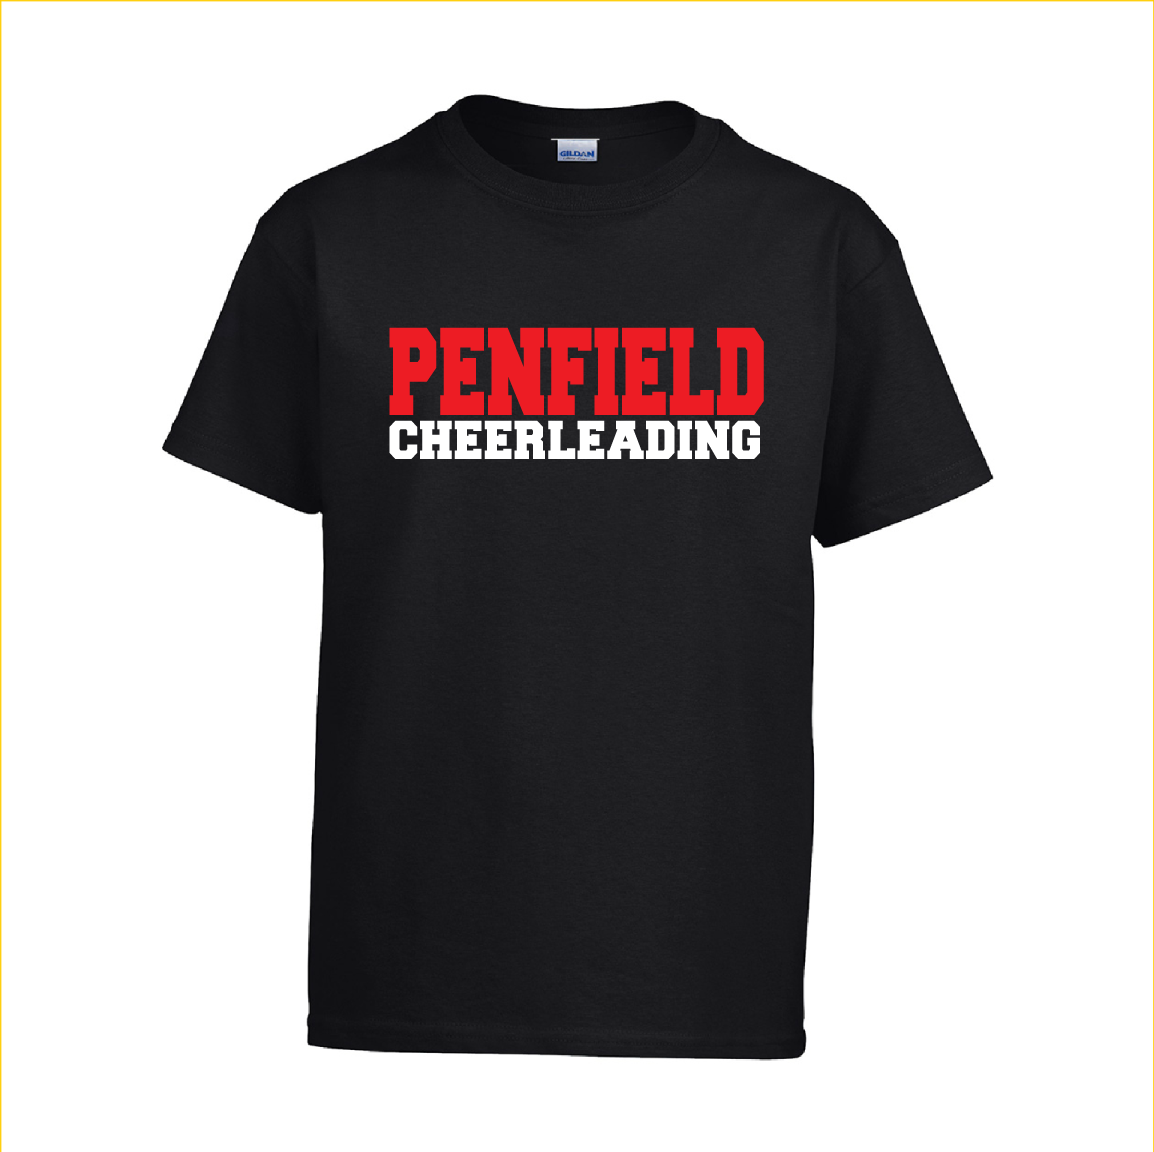 Penfield Cheerleading